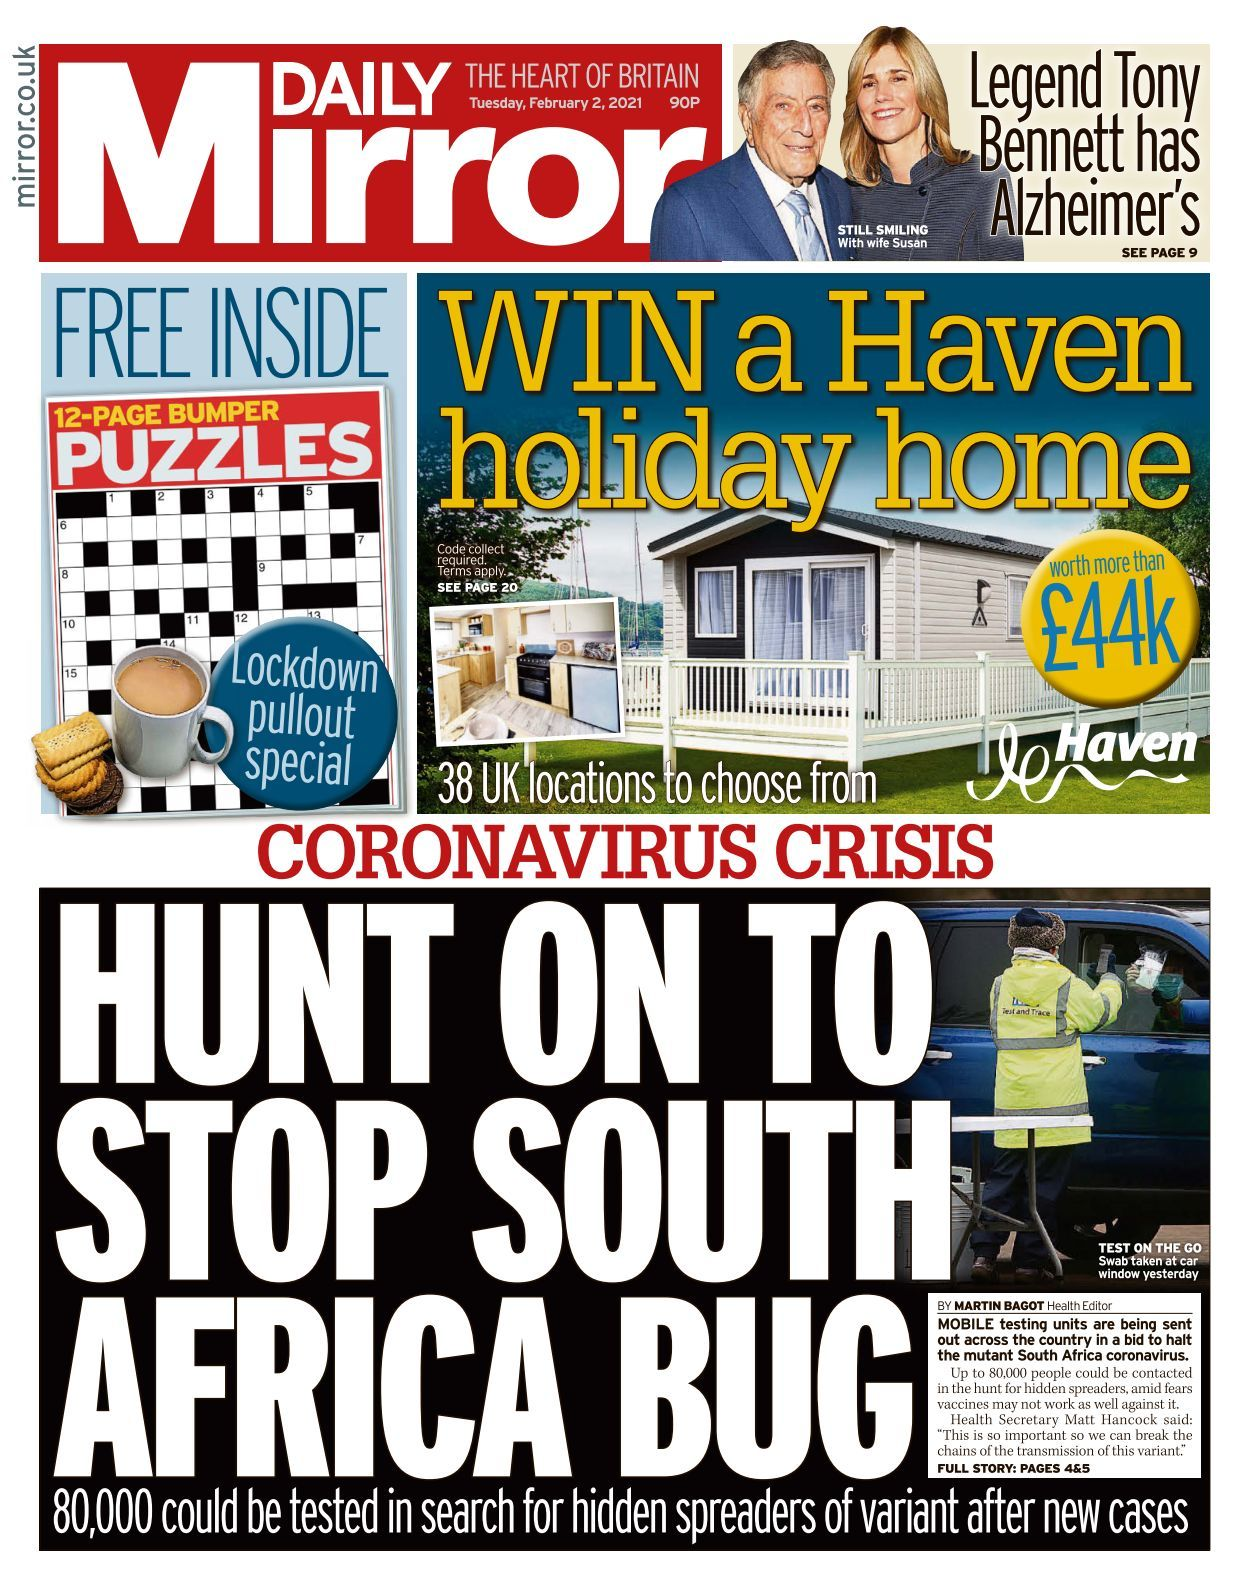 Daily Mirror 2021 02 02